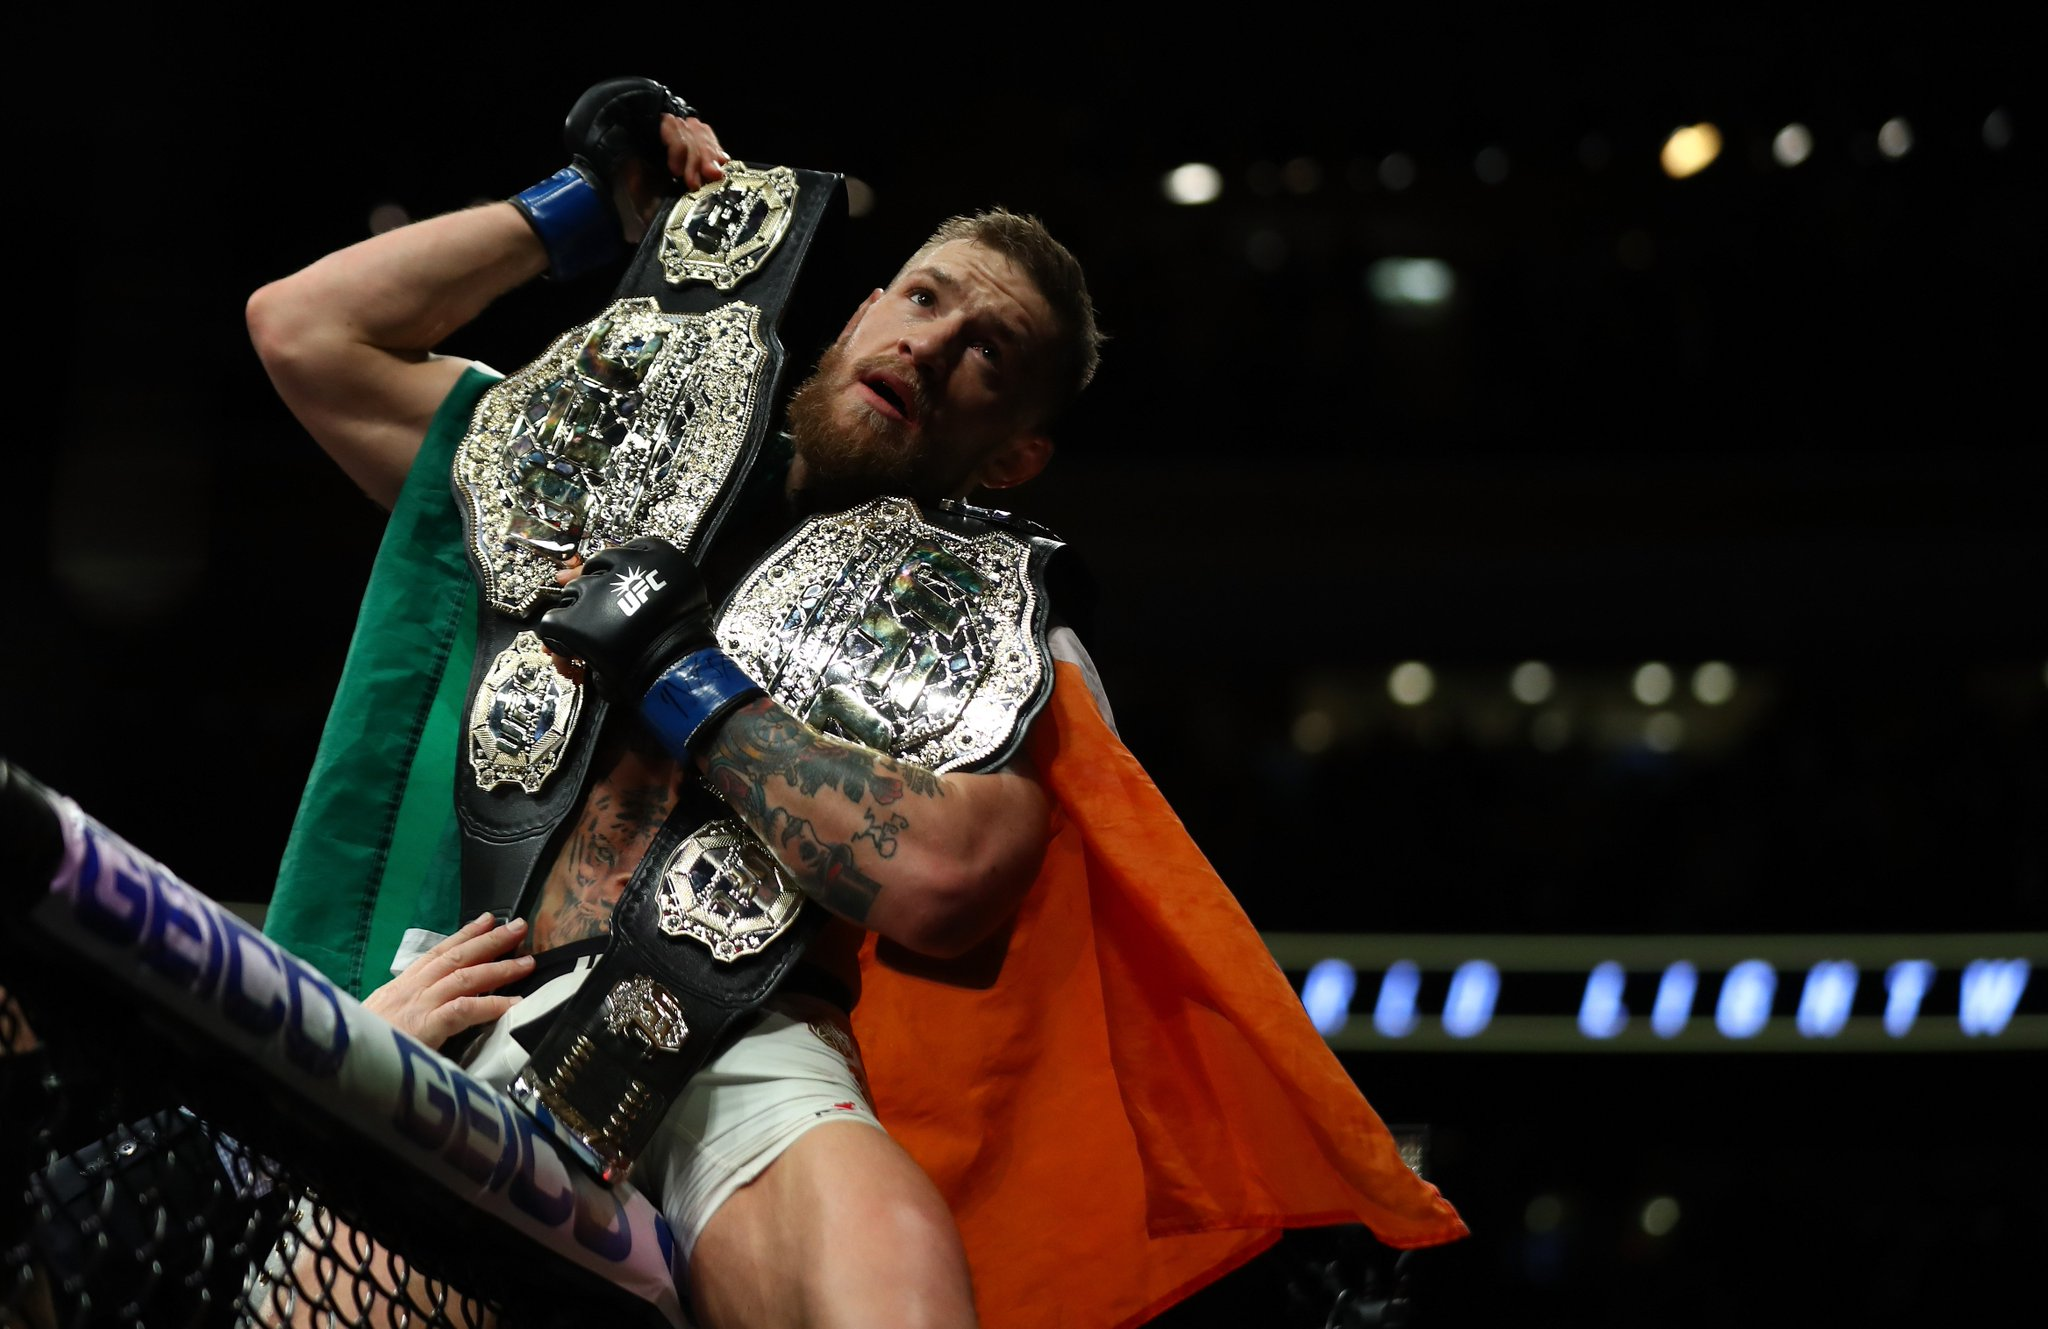 History. #UFC205 https://t.co/Yt9MO9yUM0